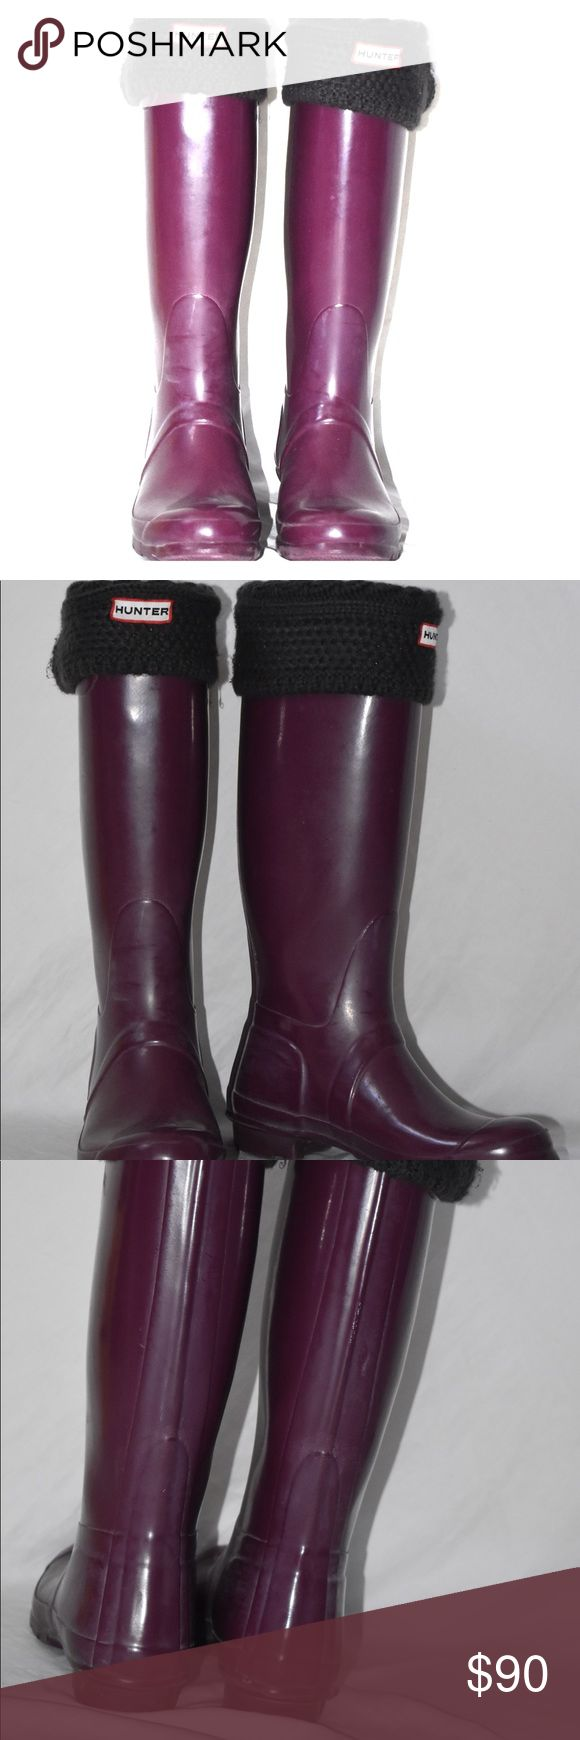 HUNTER classic tall boot w/ grey wellies The classic Hunter tall rain boot in eggplant. Grey Wellies included. Stylish and great for rainy days. Great condition. Hunter Boots Shoes Winter & Rain Boots